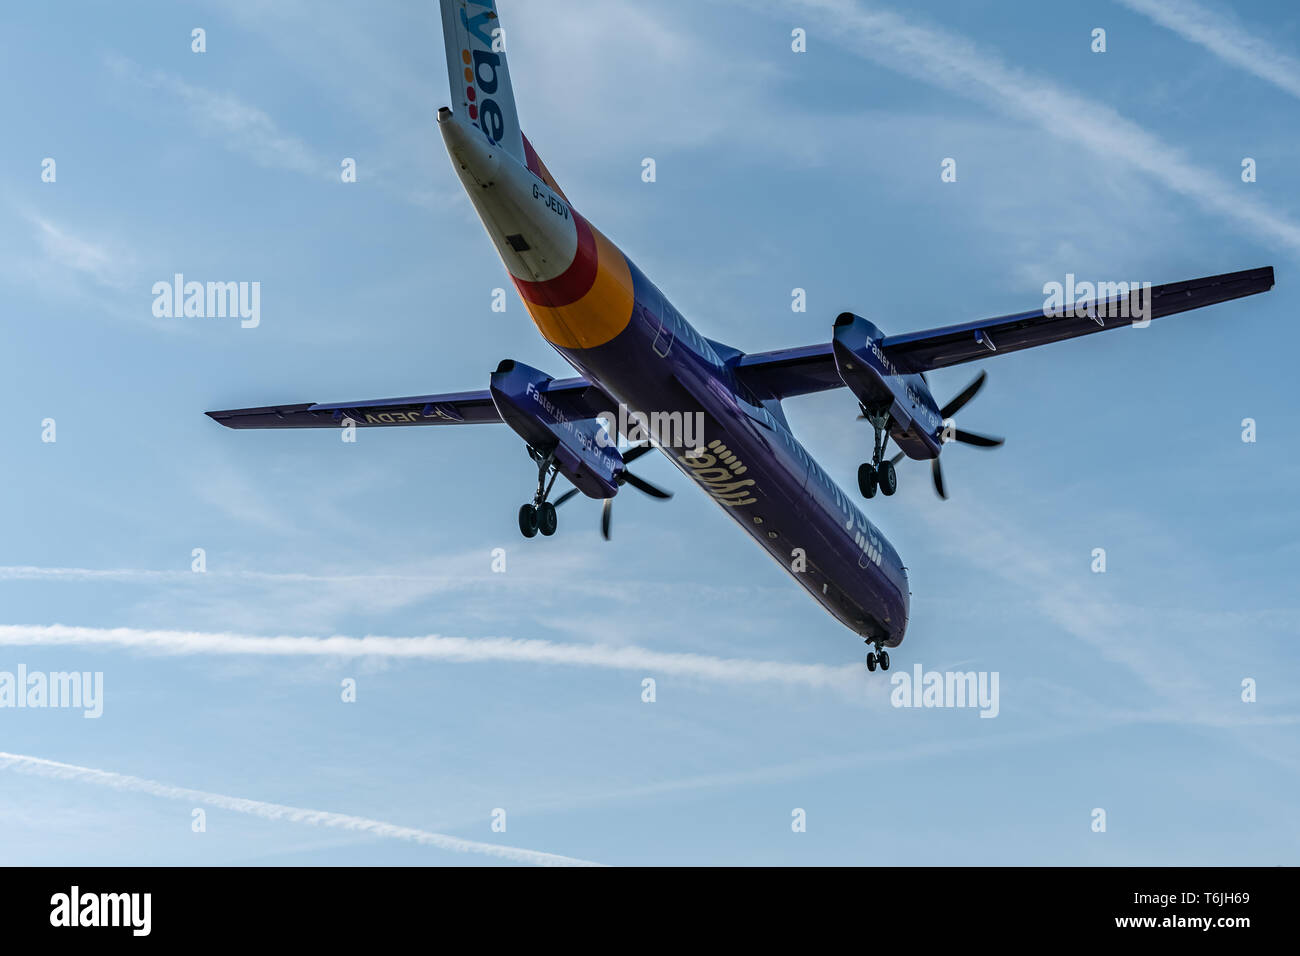 London, UK - 17, February 2019: Flybe a British regional airline based in England, aircraft type De Havilland Canada DHC-8-400 Fly on blue sky. - Stock Image